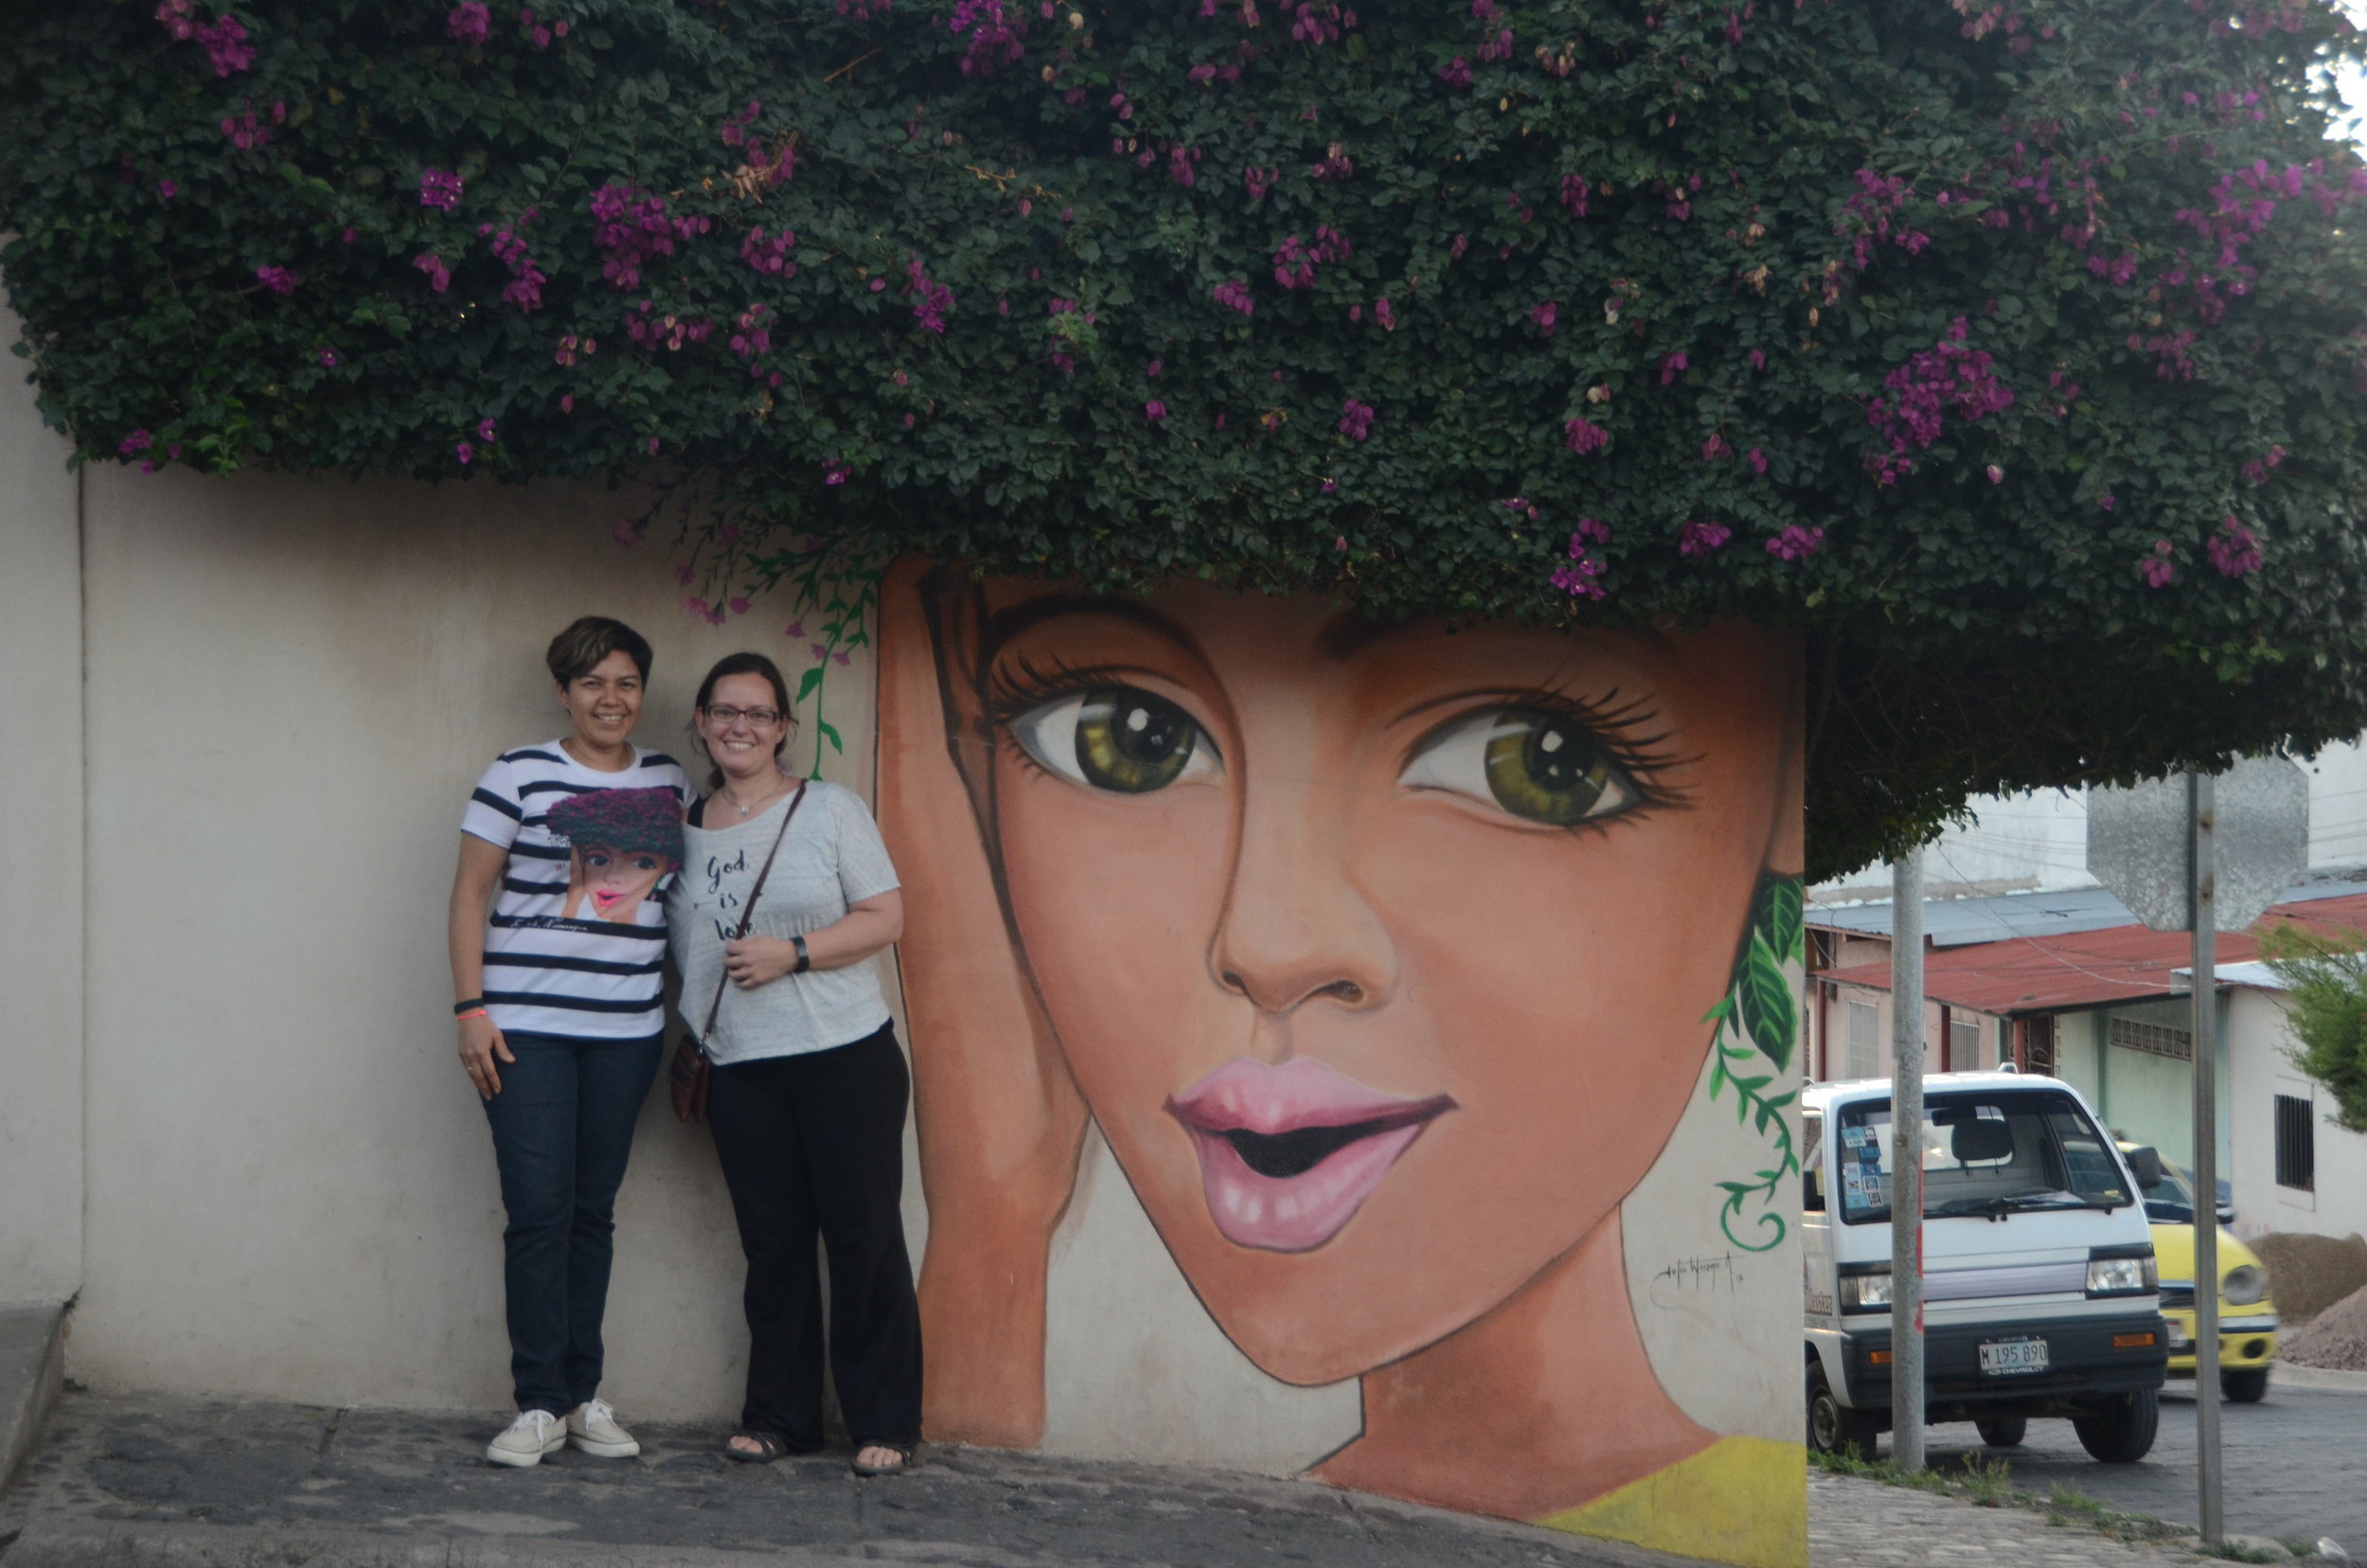 My friend Mirna's shirt matches the mural. I had to get myself in at least one photo.